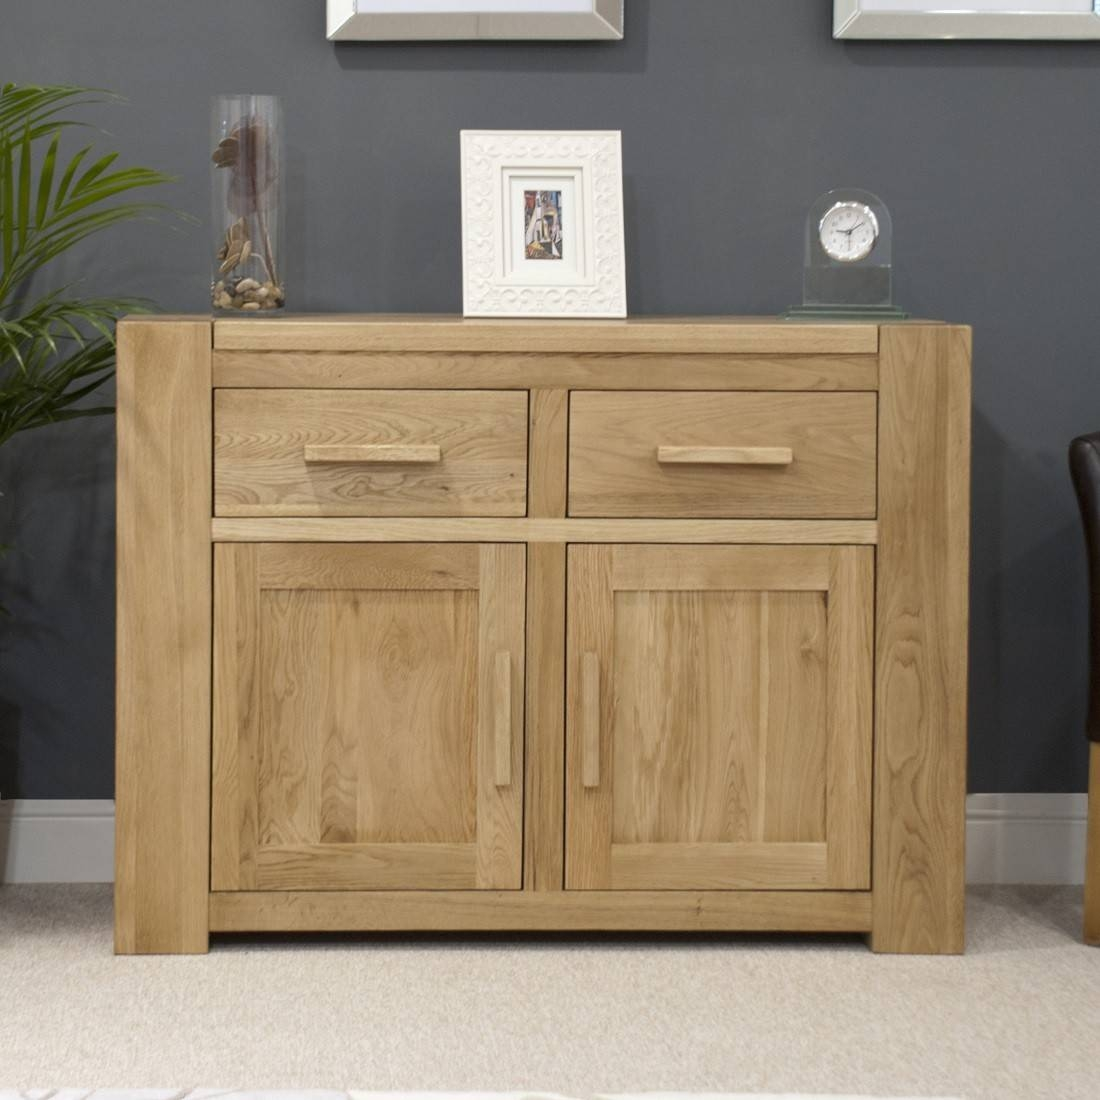 Trend Solid Oak Small 2 Door Sideboard | Oak Furniture Uk With Regard To Sideboards For Living Room (View 8 of 20)